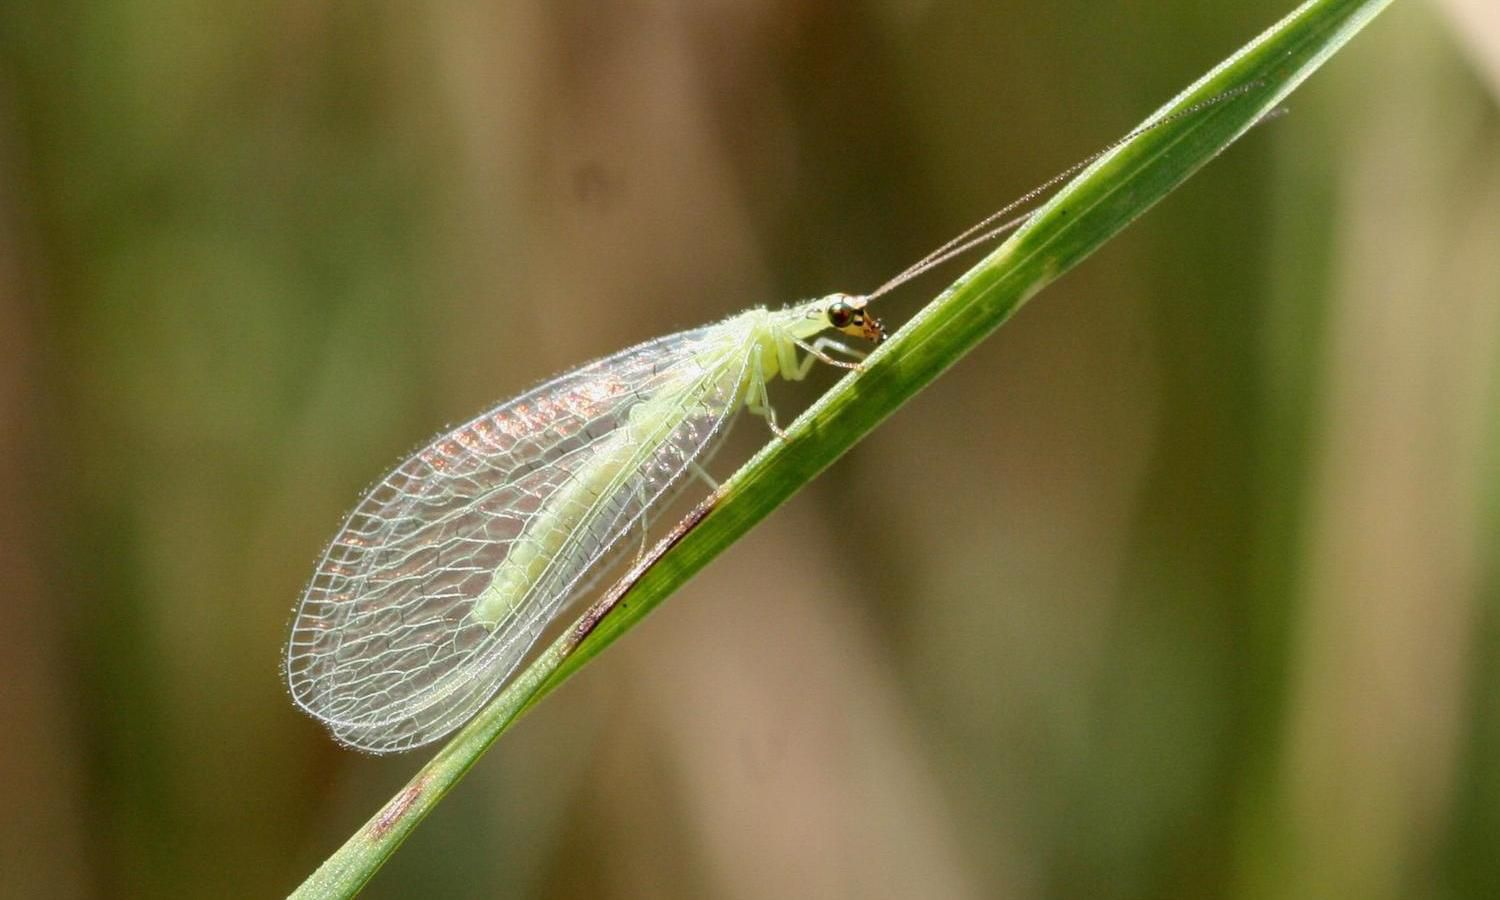 The delicate green lacewing on a green leaf